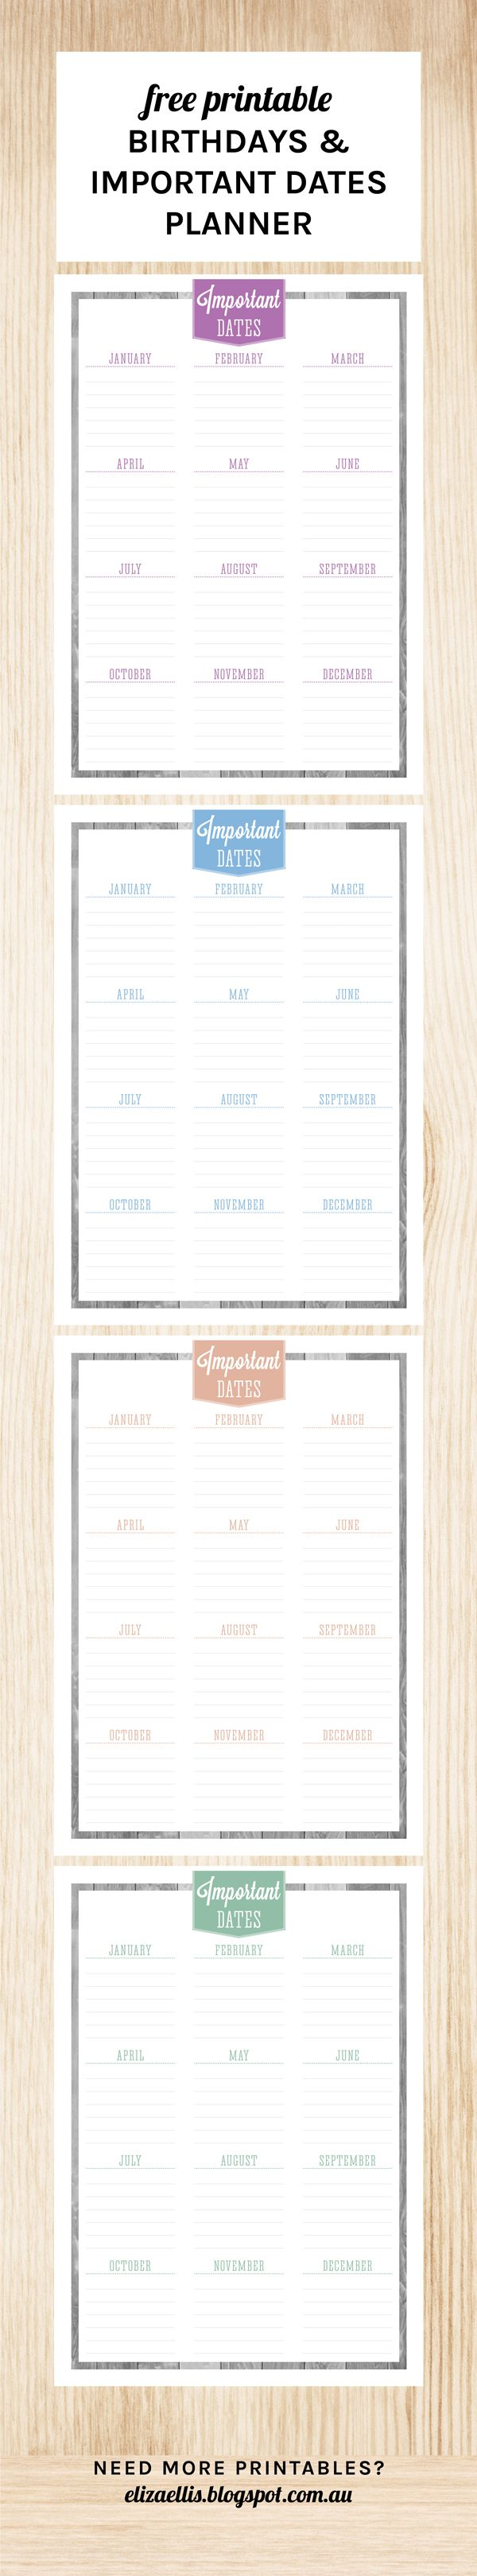 Free Printable Important Dates Planner - so you never forget anniversaries, birthdays and annual events again! The perfect addition to your Home Management Binder, Control Journal or Diary.